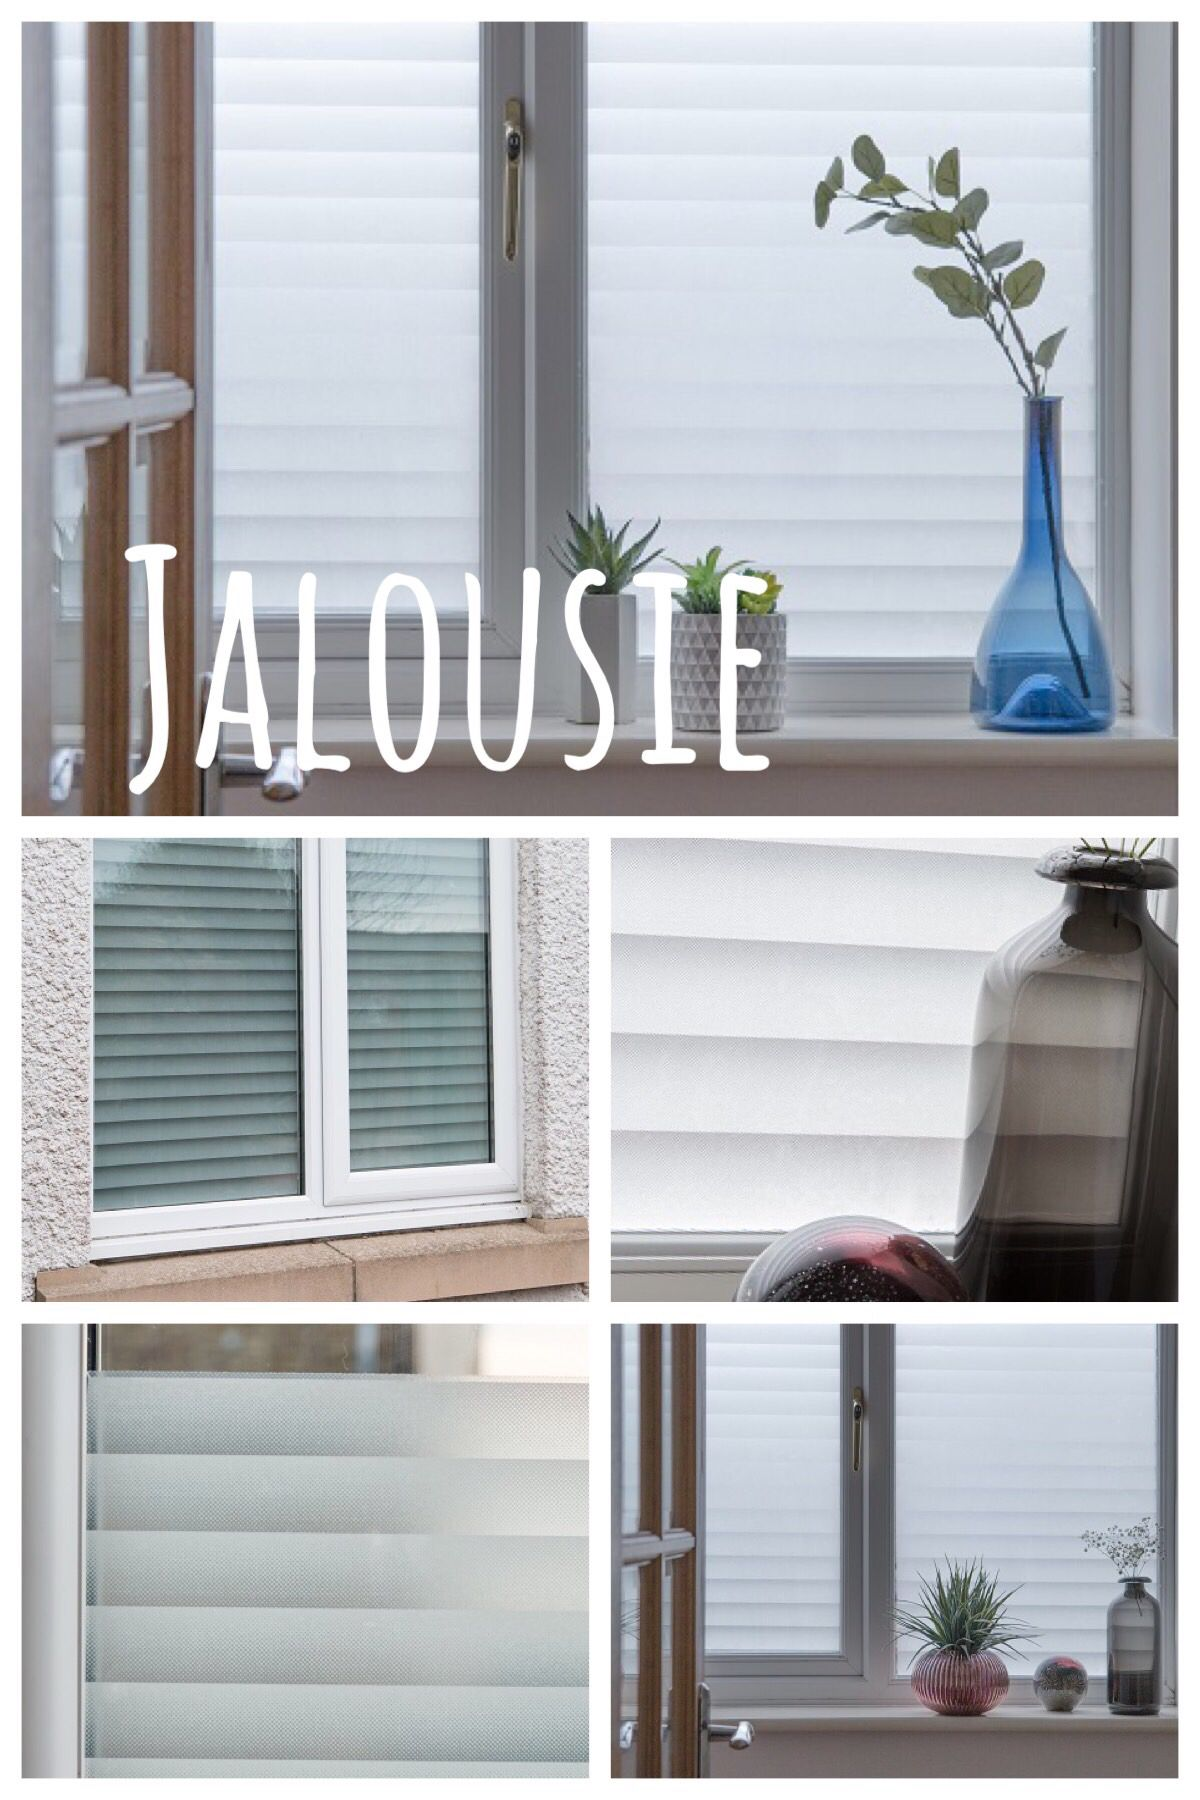 Window sticky back plastic is designed to provide privacy